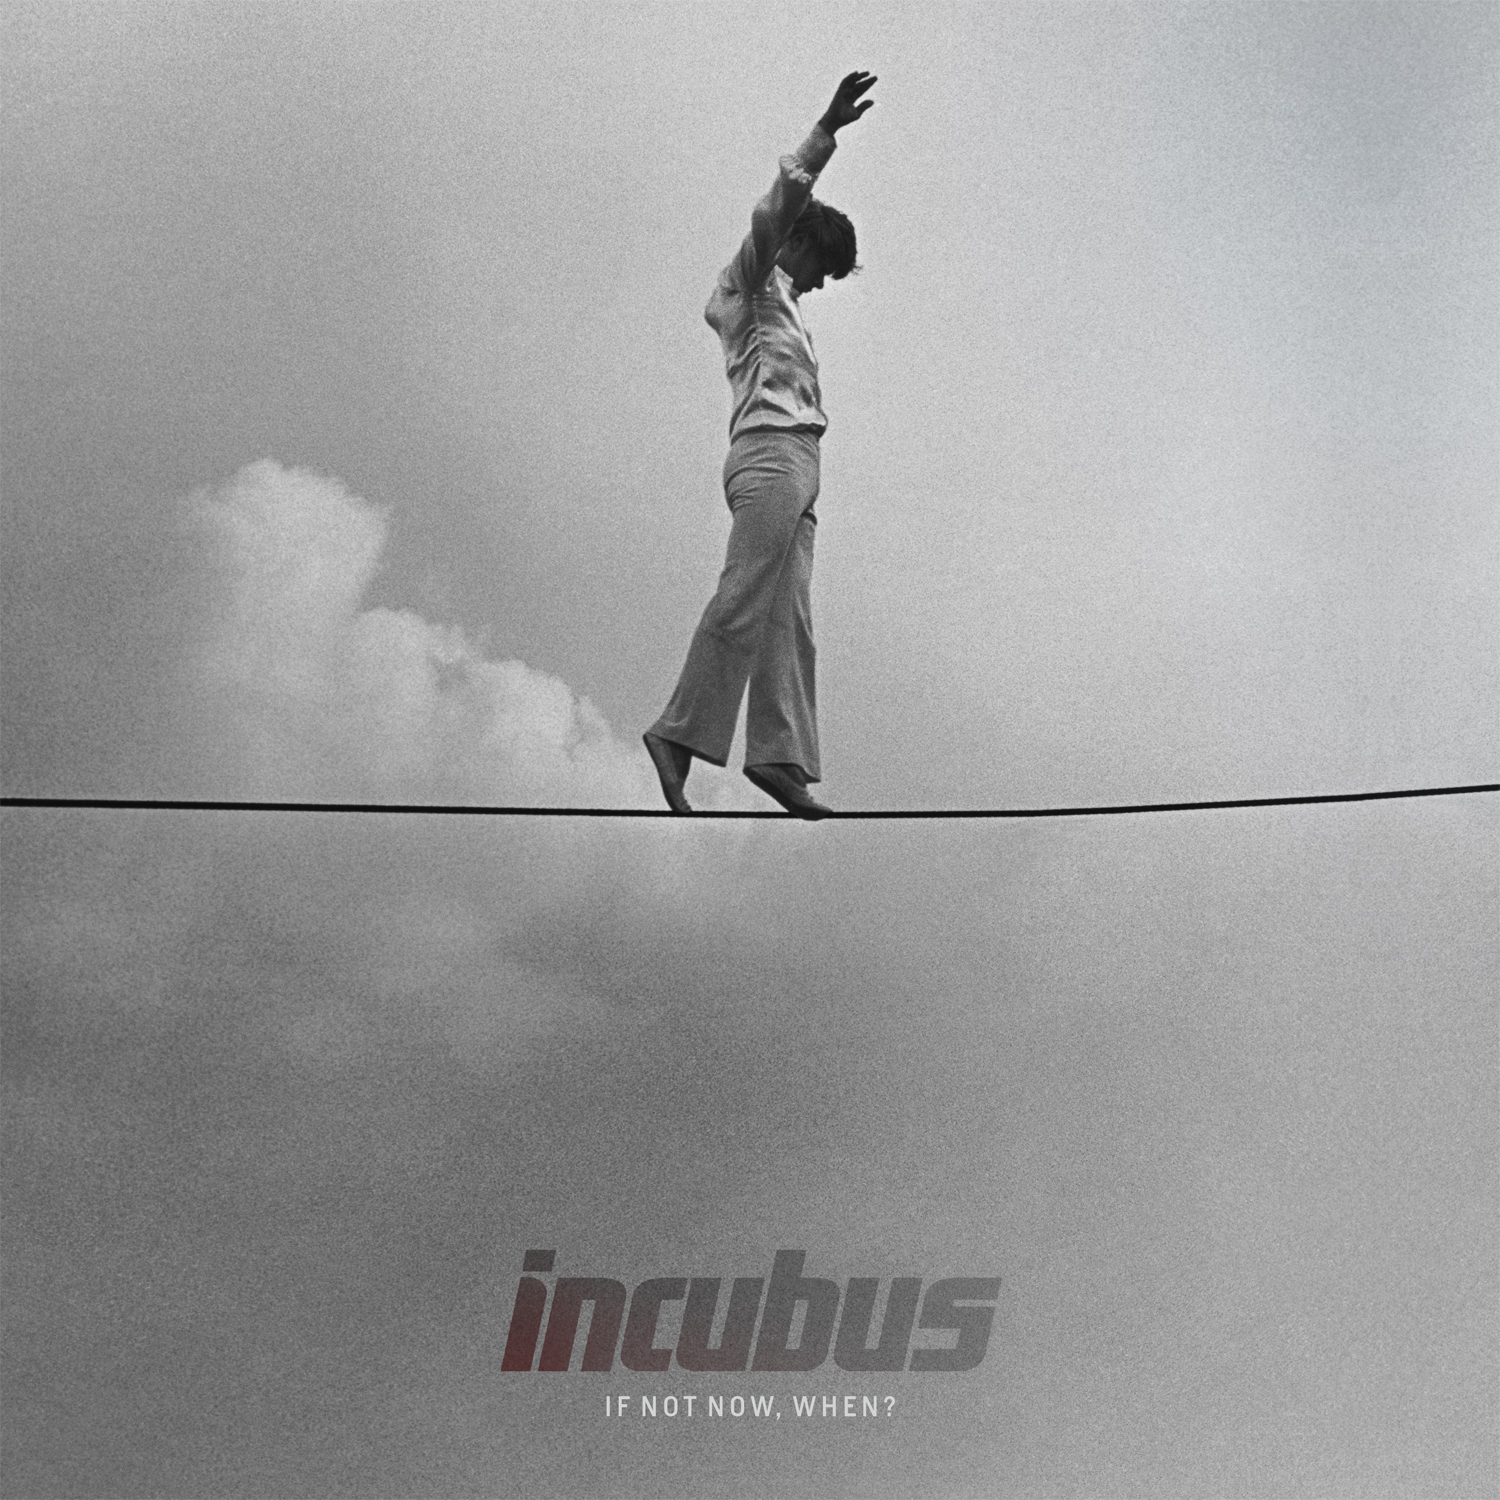 incubus if not now when -#main